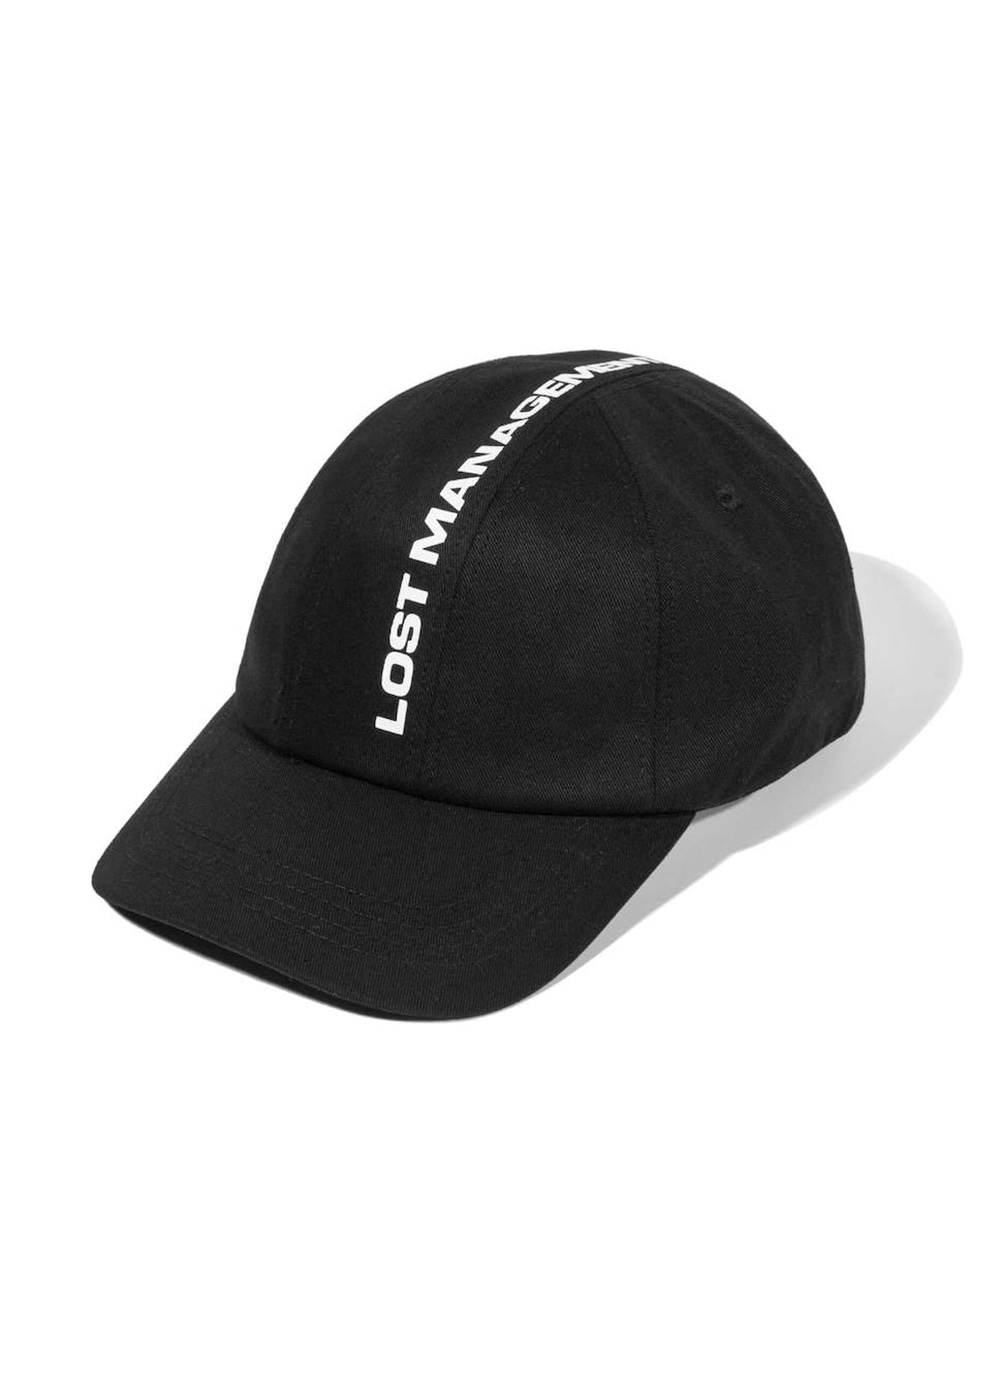 LMC LONG FN 7PANEL CAP black